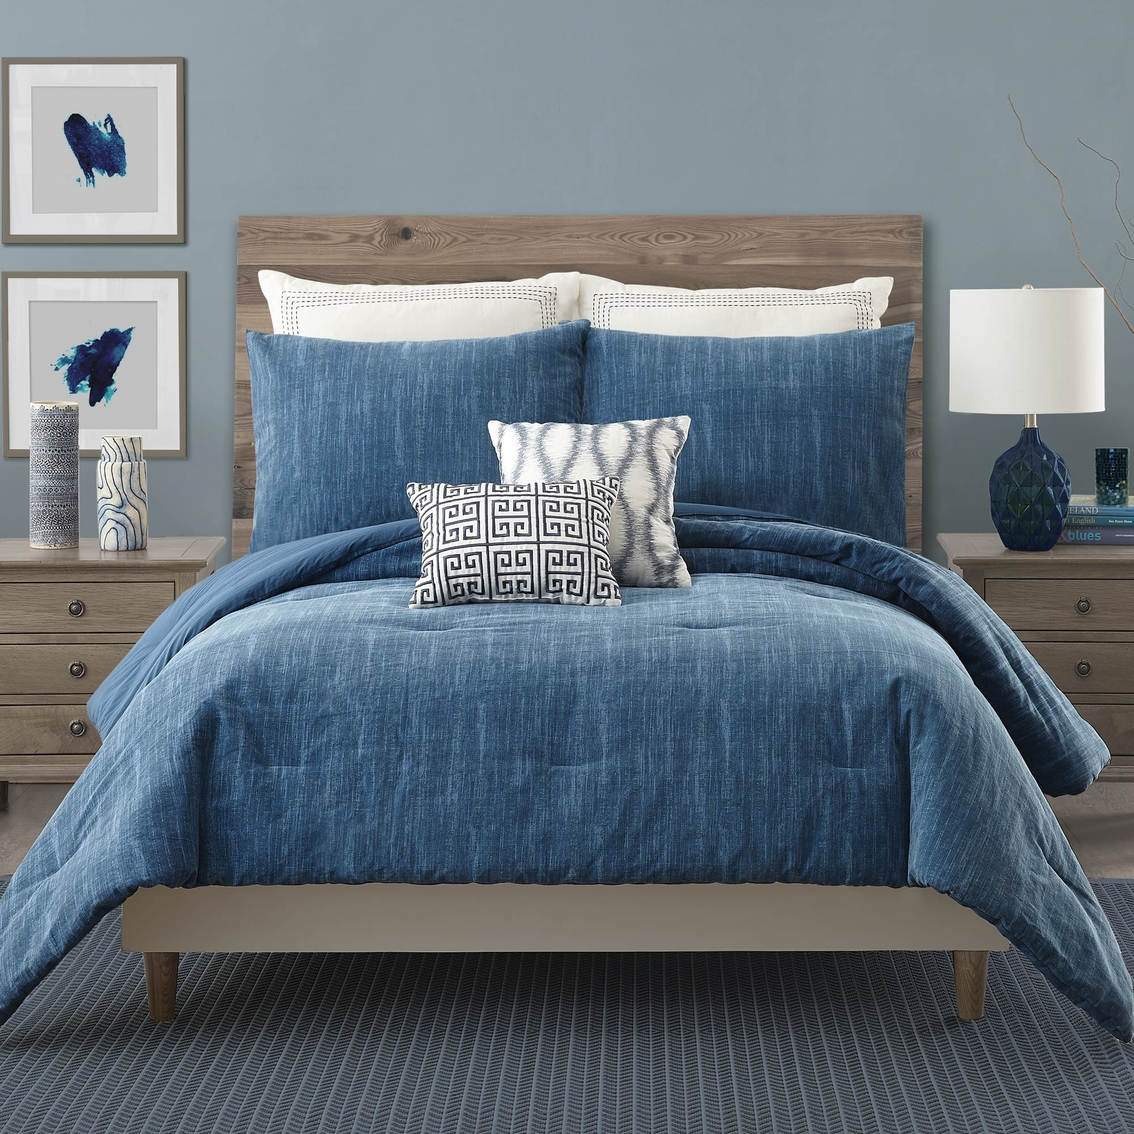 Ayesha Curry Rhapsody In Blue 3 Pc Comforter Set Bedding Sets Household Shop The Exchange